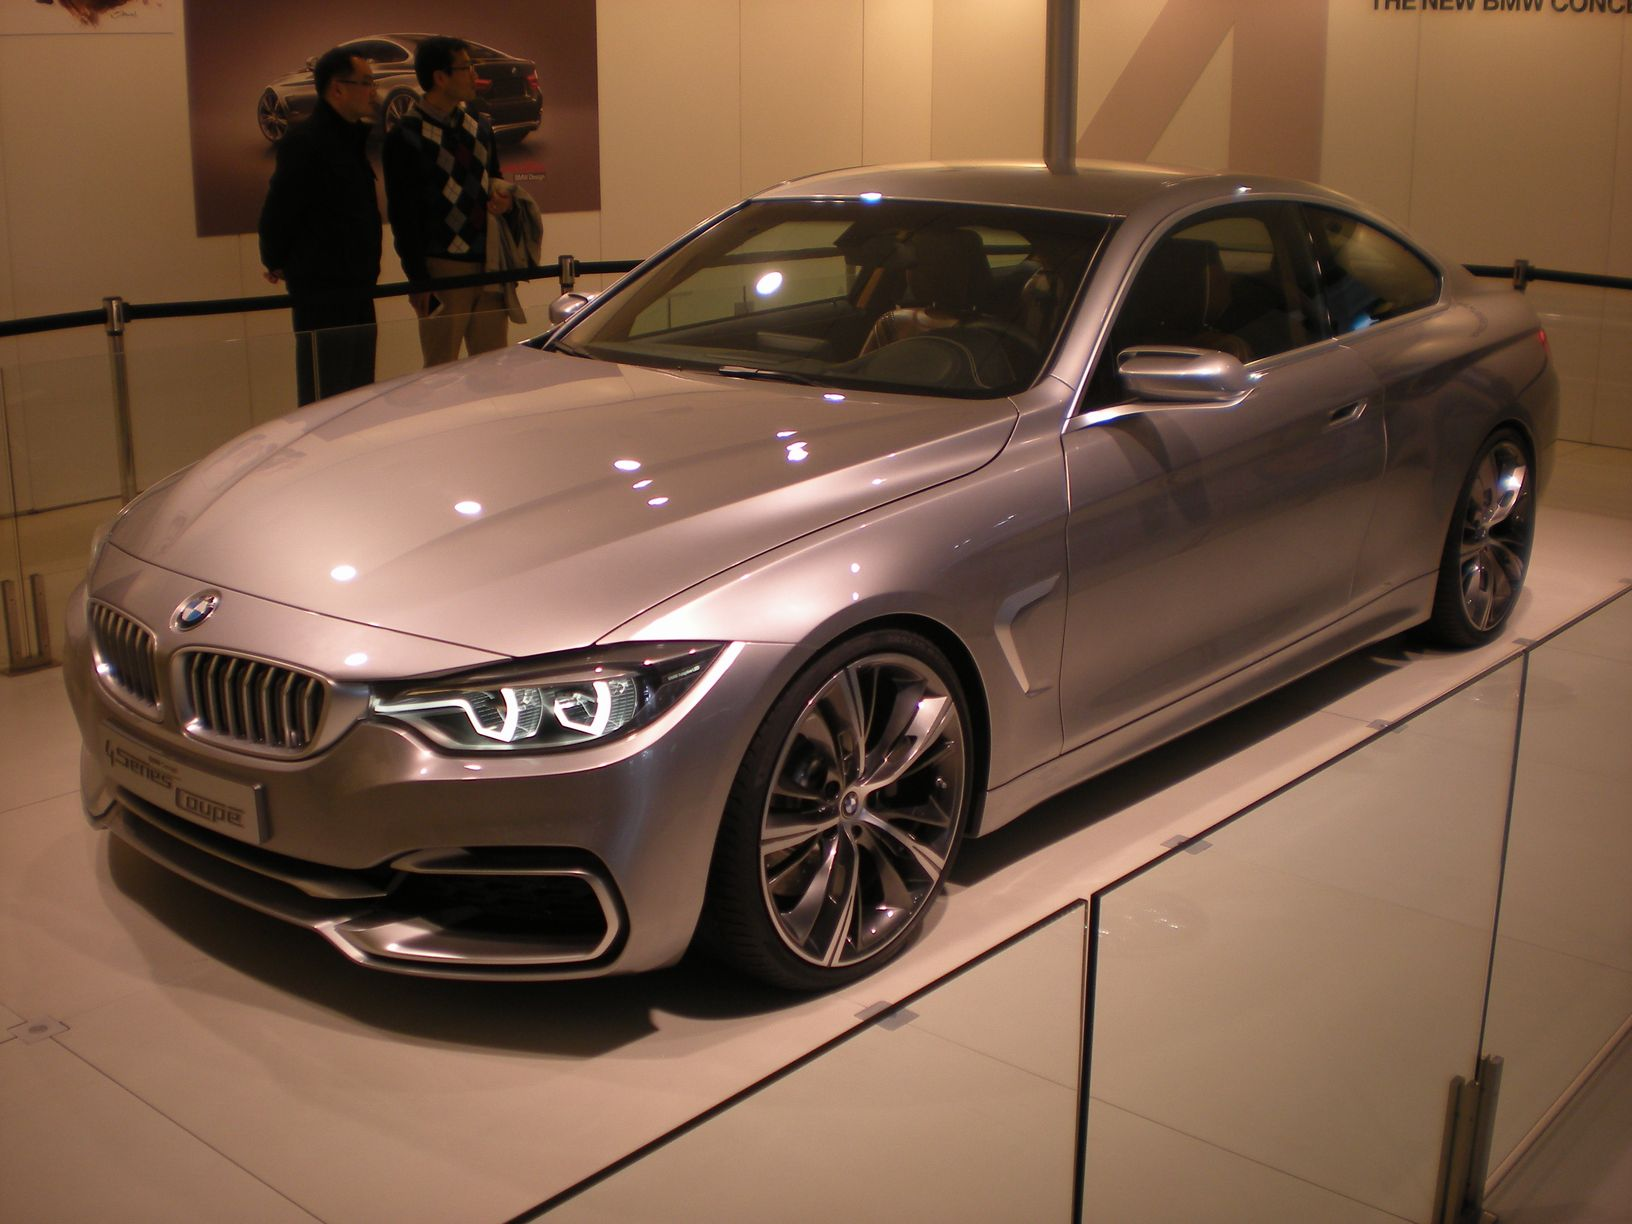 File:BMW 4Series Coupe 01.JPG